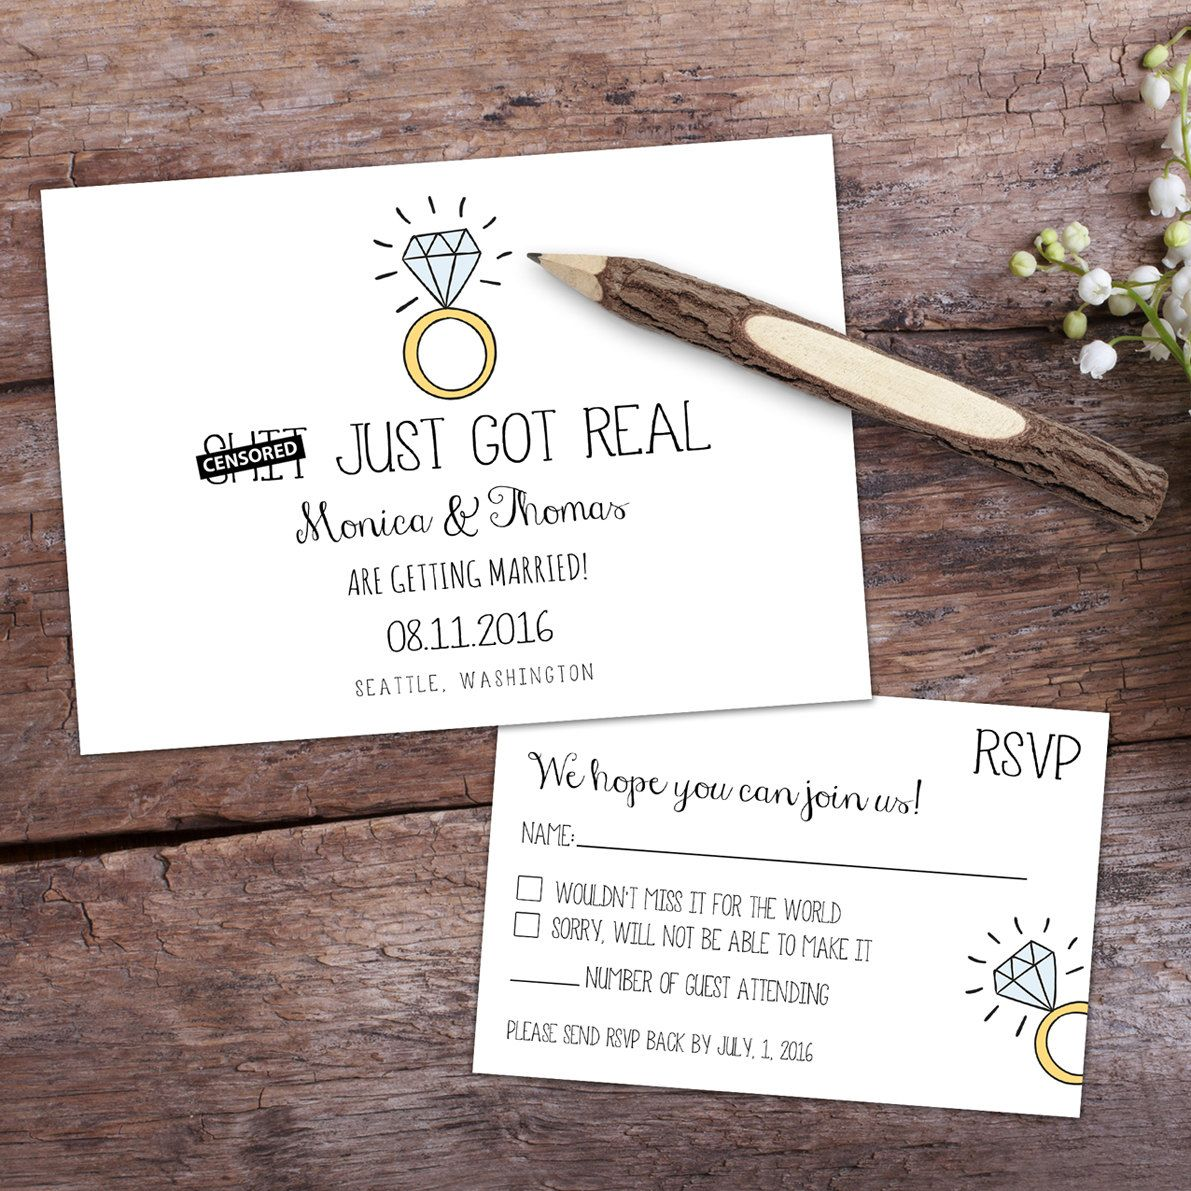 Fun Wedding Rsvp Card Wording: Save The Date & RSVP Custom Cards. Funny Engagement